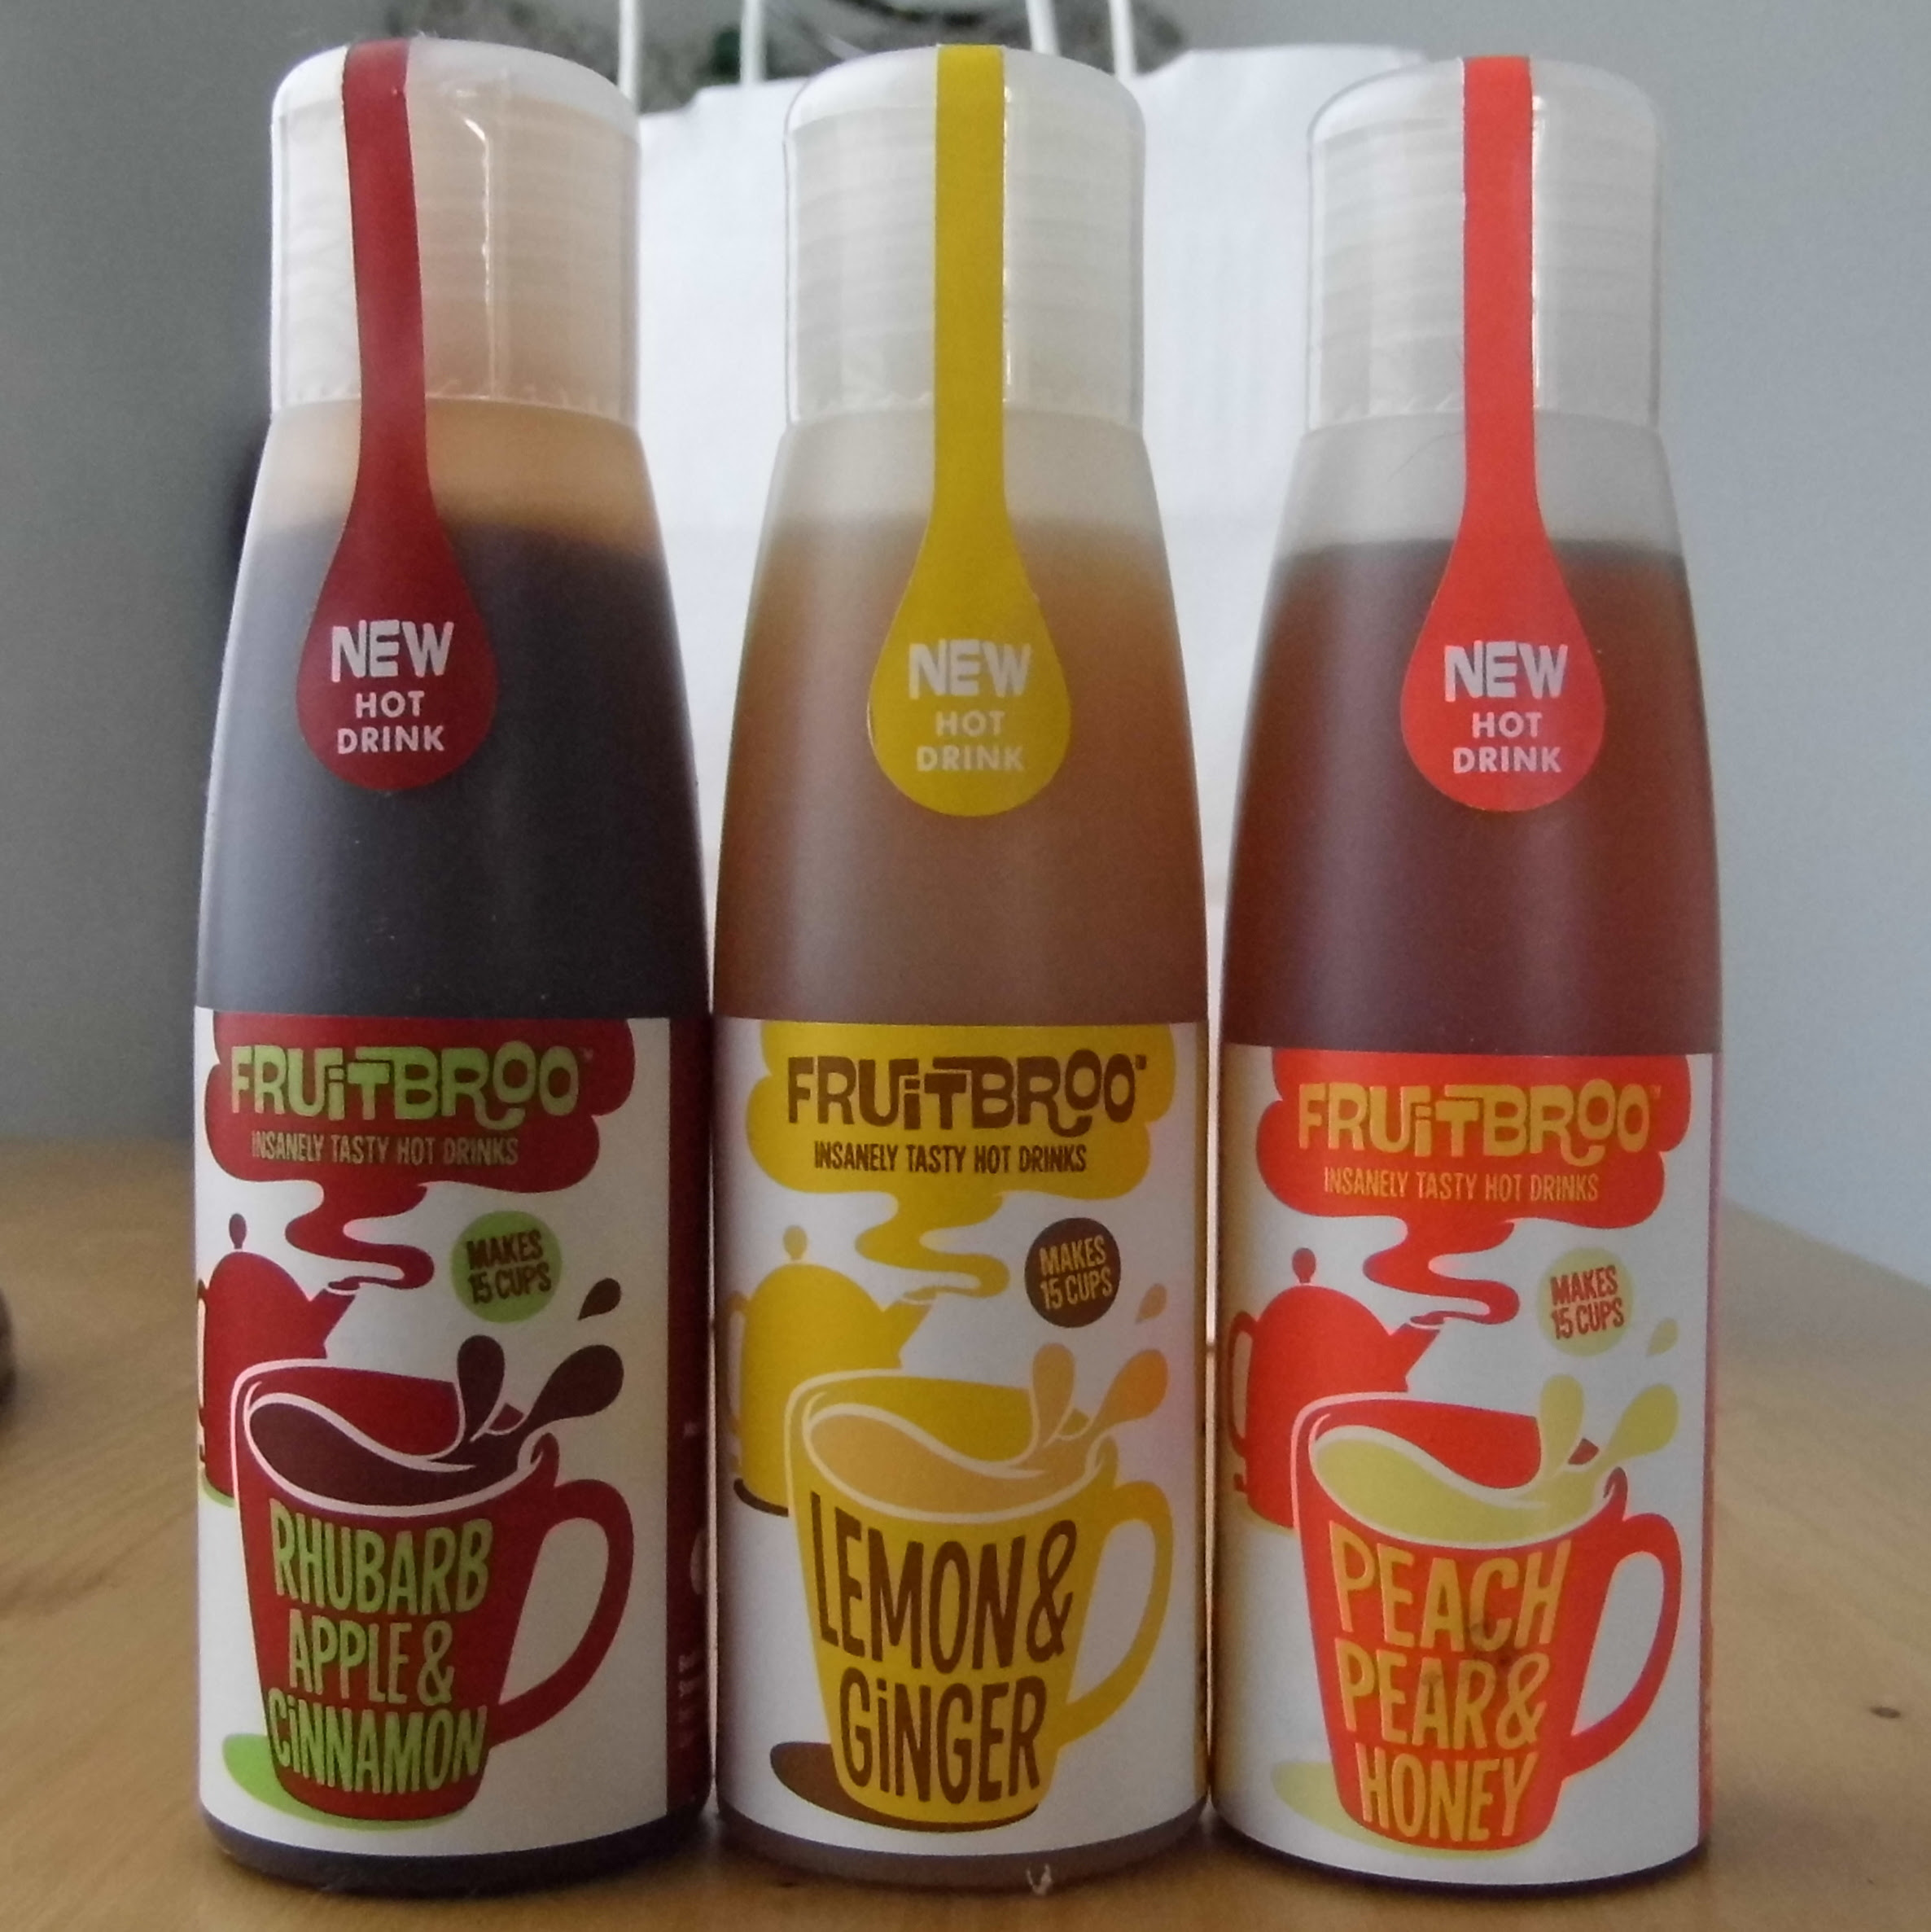 Fruitbroo Flavours